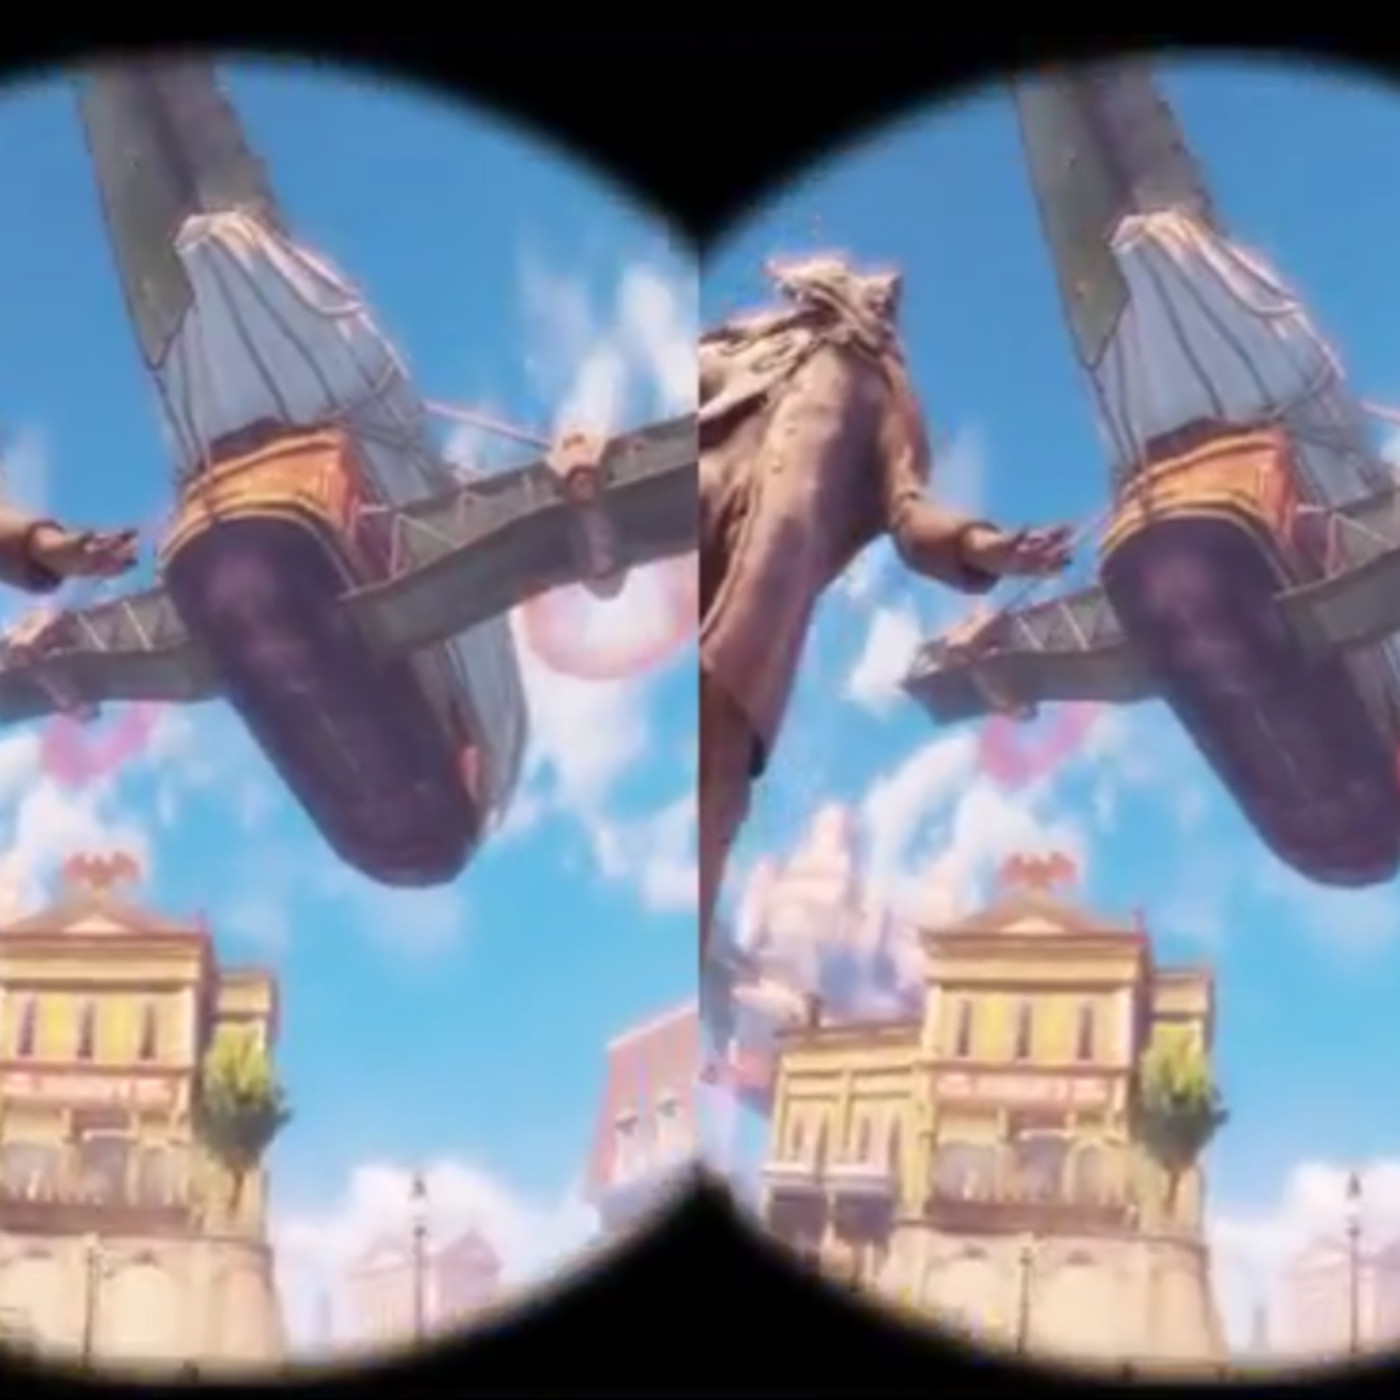 vorpX enables Oculus Rift support for more than 90 games, beta